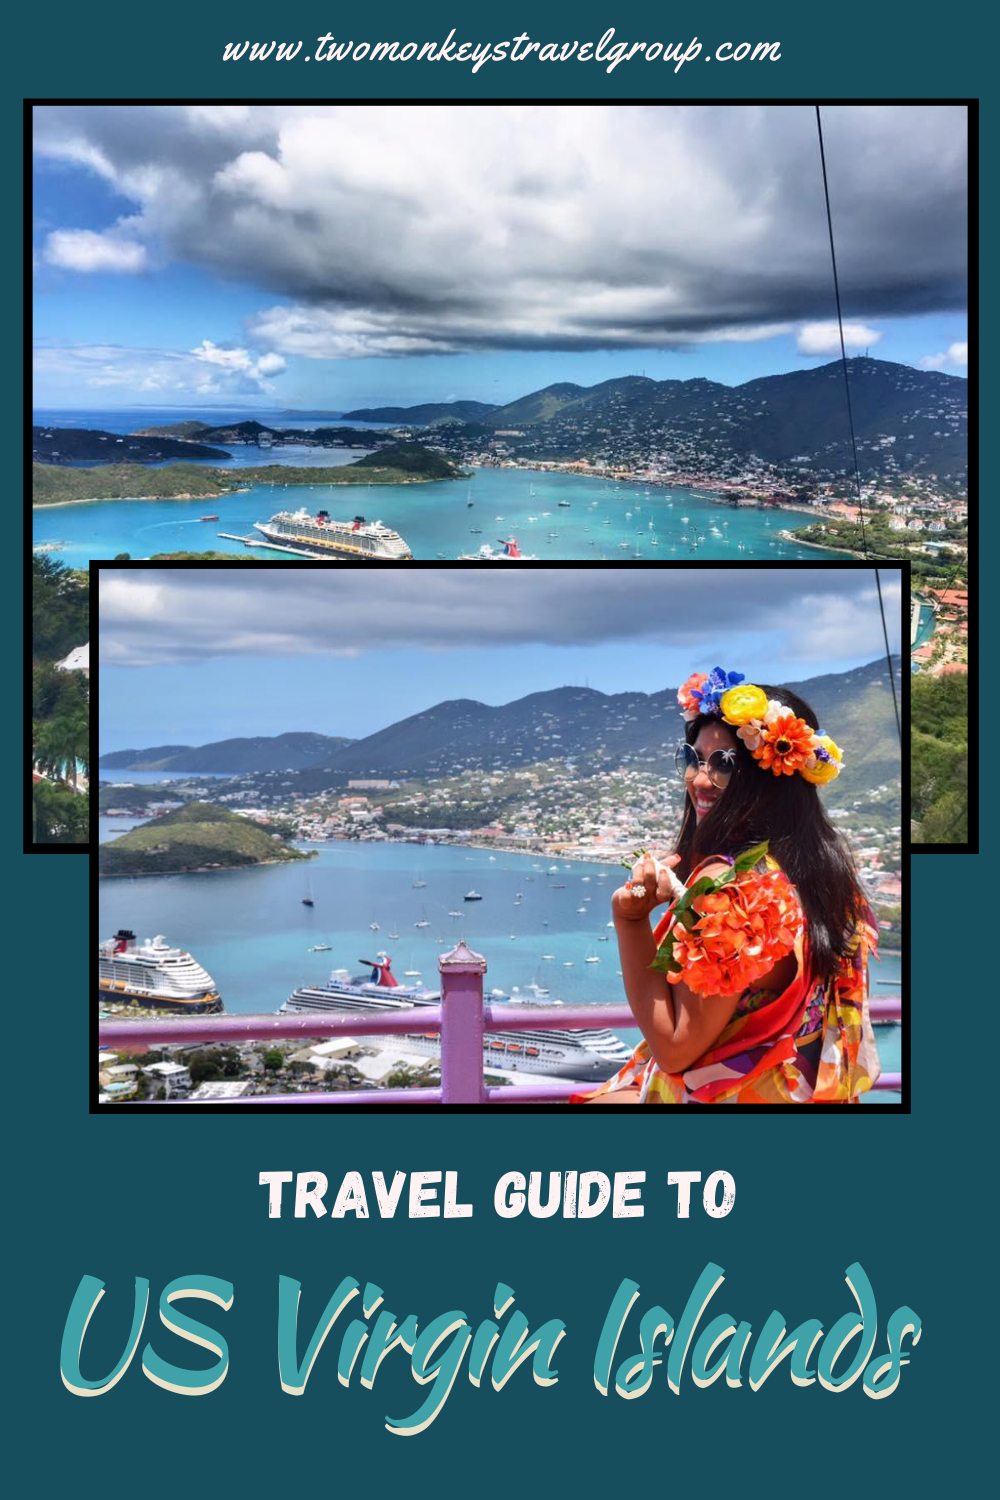 Travel Guide to US Virgin Islands – How, Where & FAQs